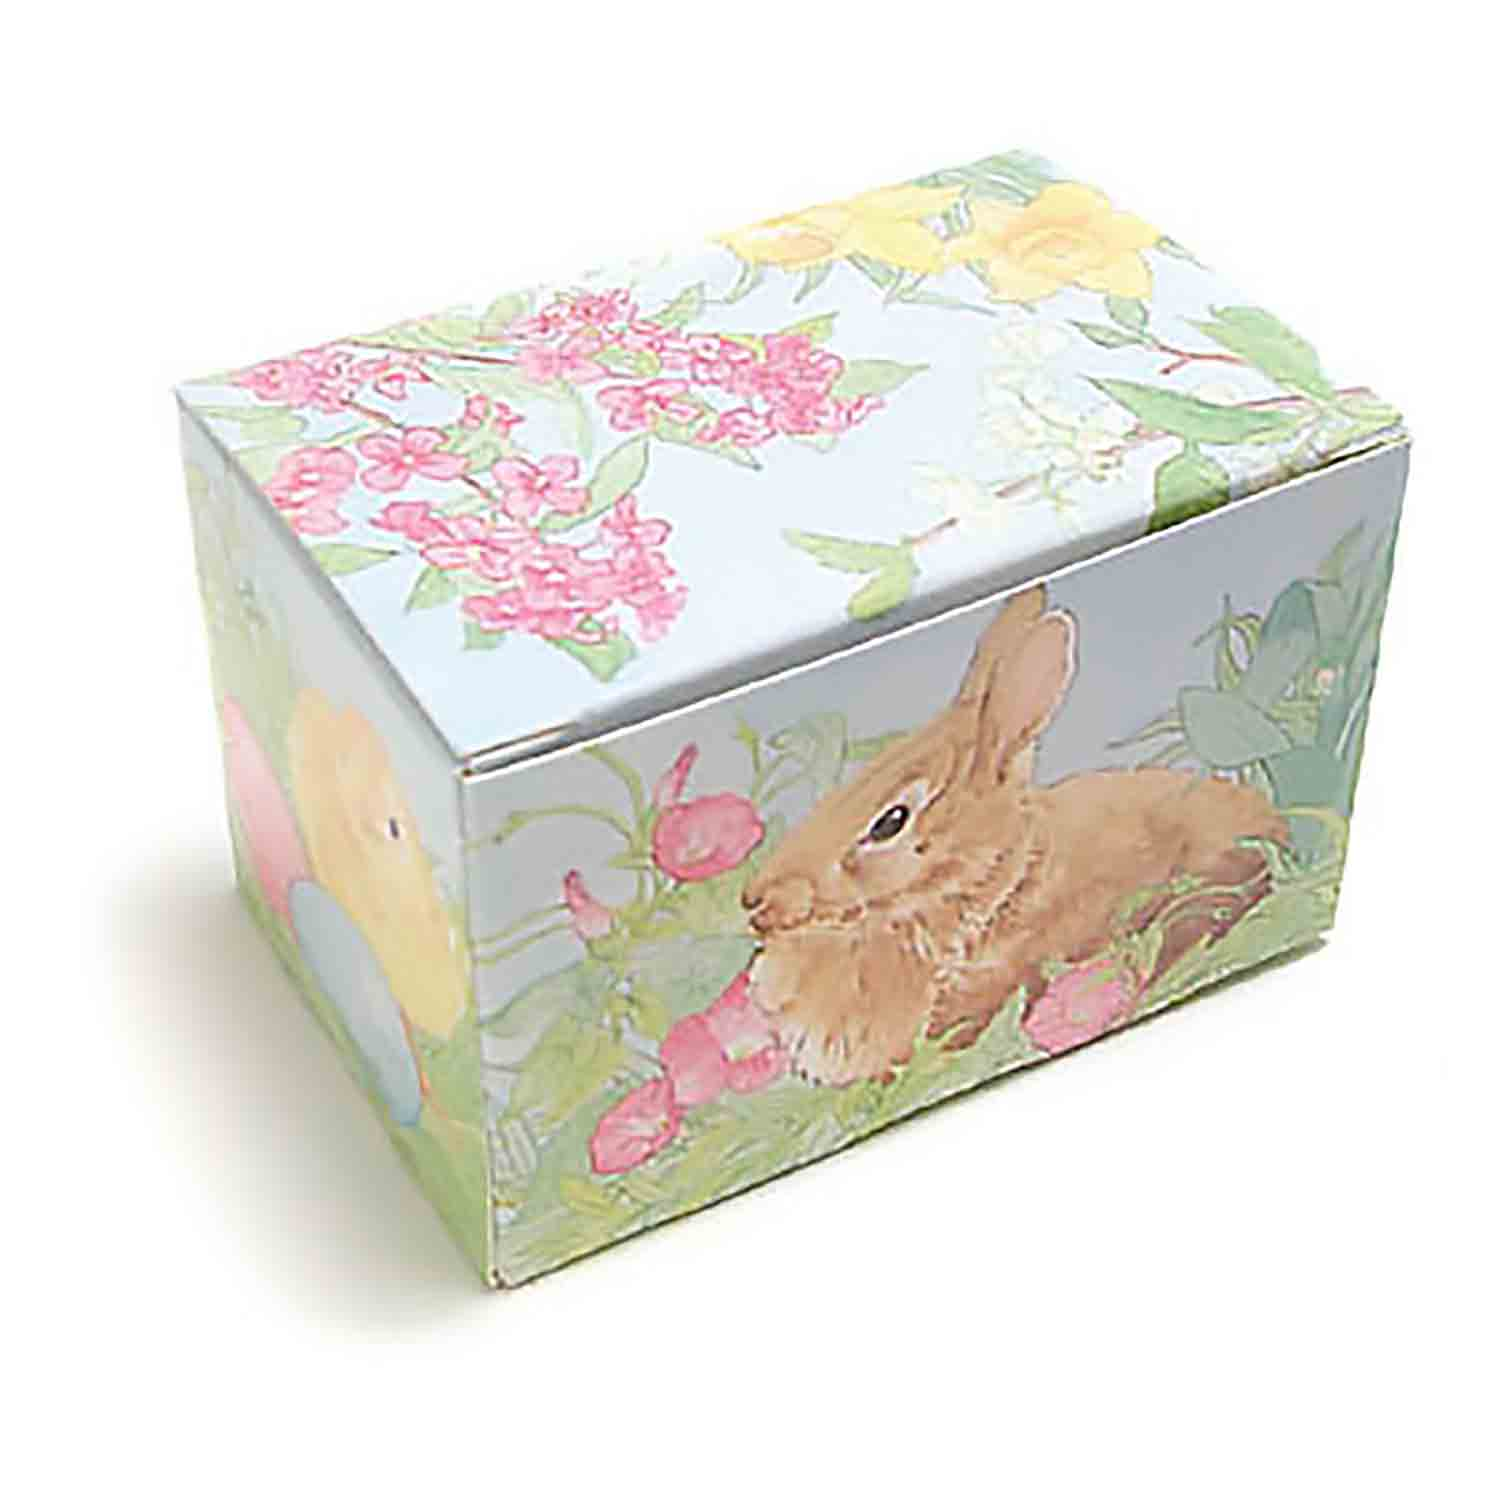 1/2 lb. Easter Garden Egg Candy Box